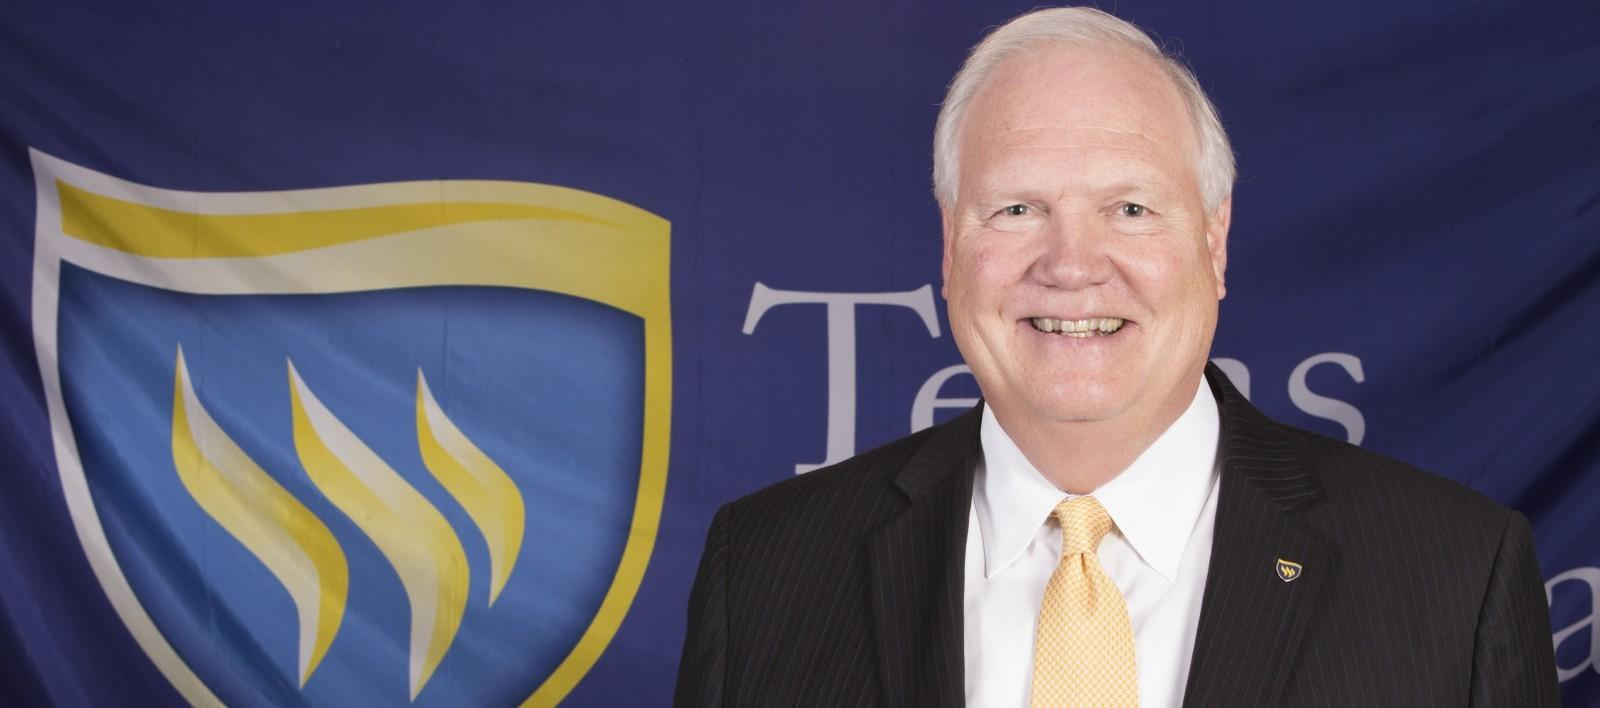 Tim Carter is named new chairman for Texas Wesleyan Board of Trustees